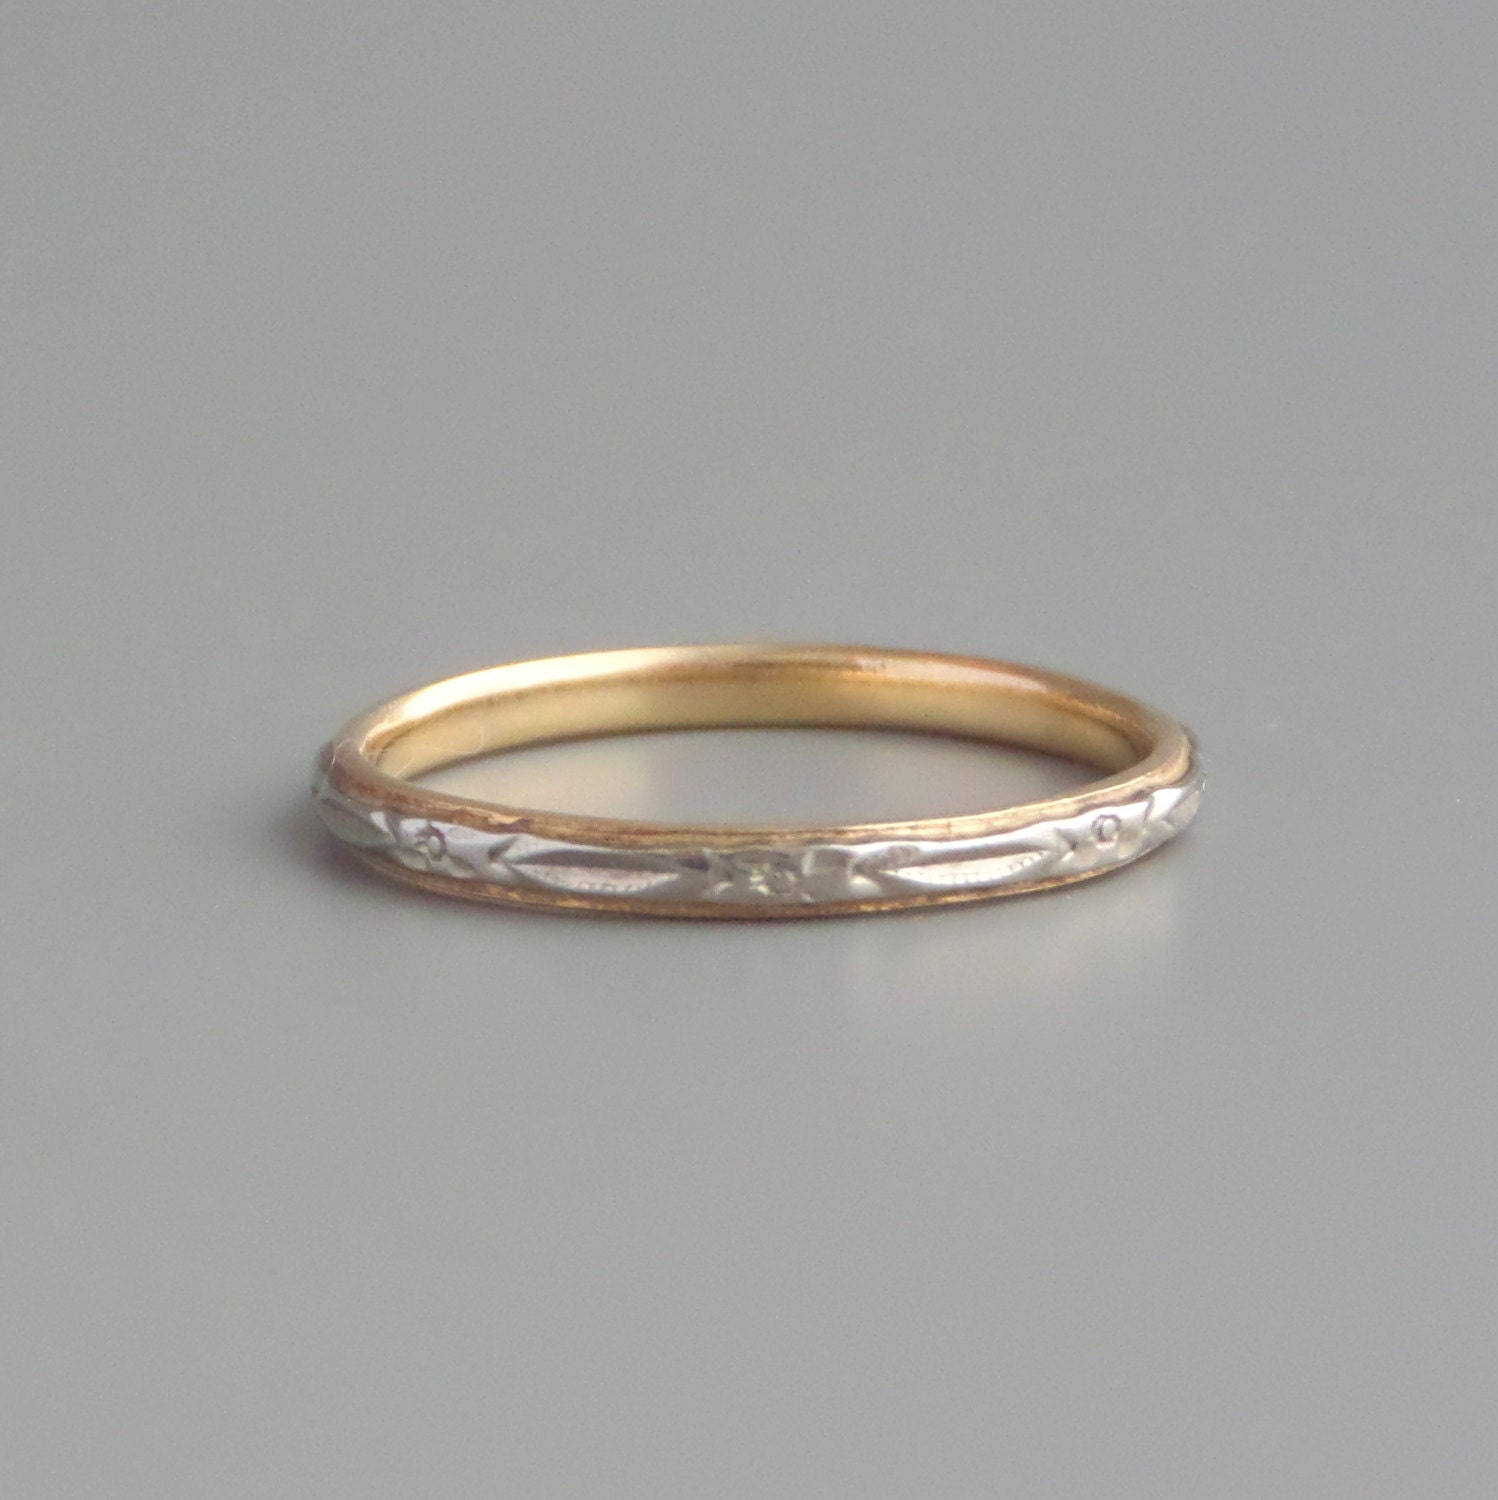 1940s eternity ring 14k white yellow gold wedding by